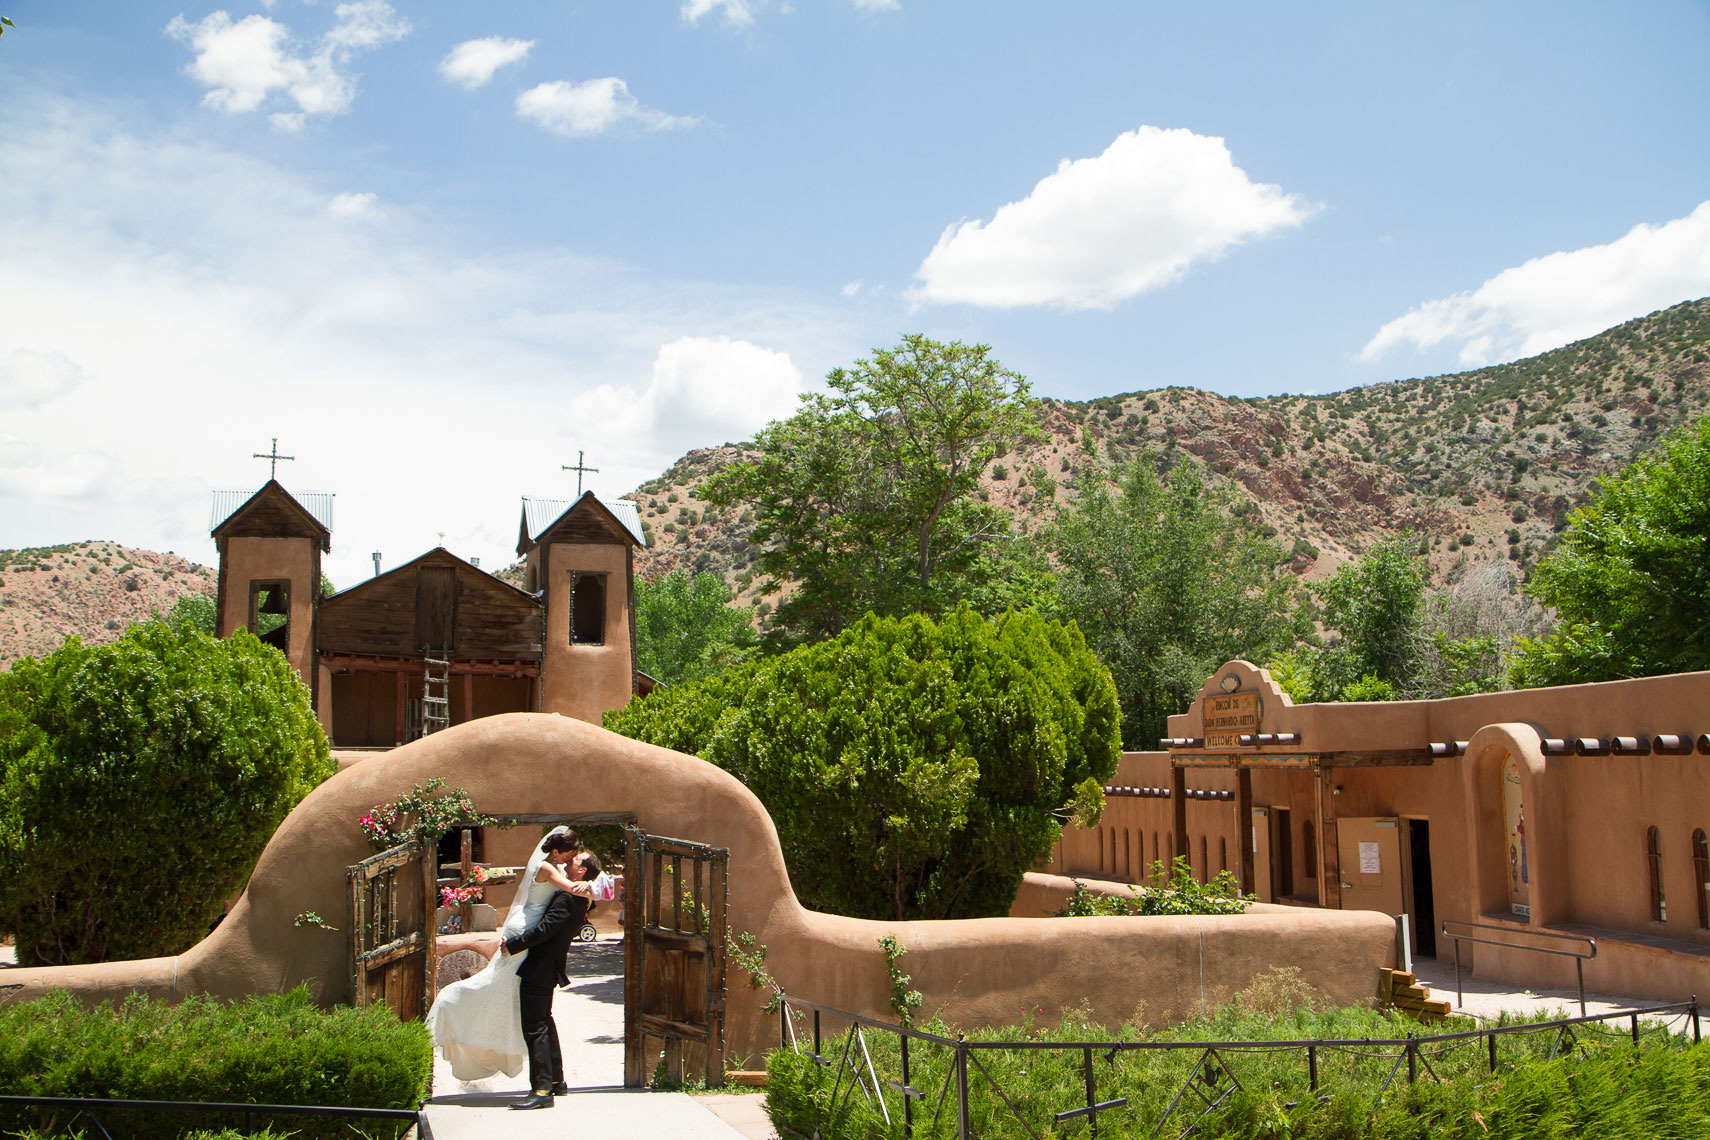 Wedding at the El Santuario de Chimayó in New Mexico